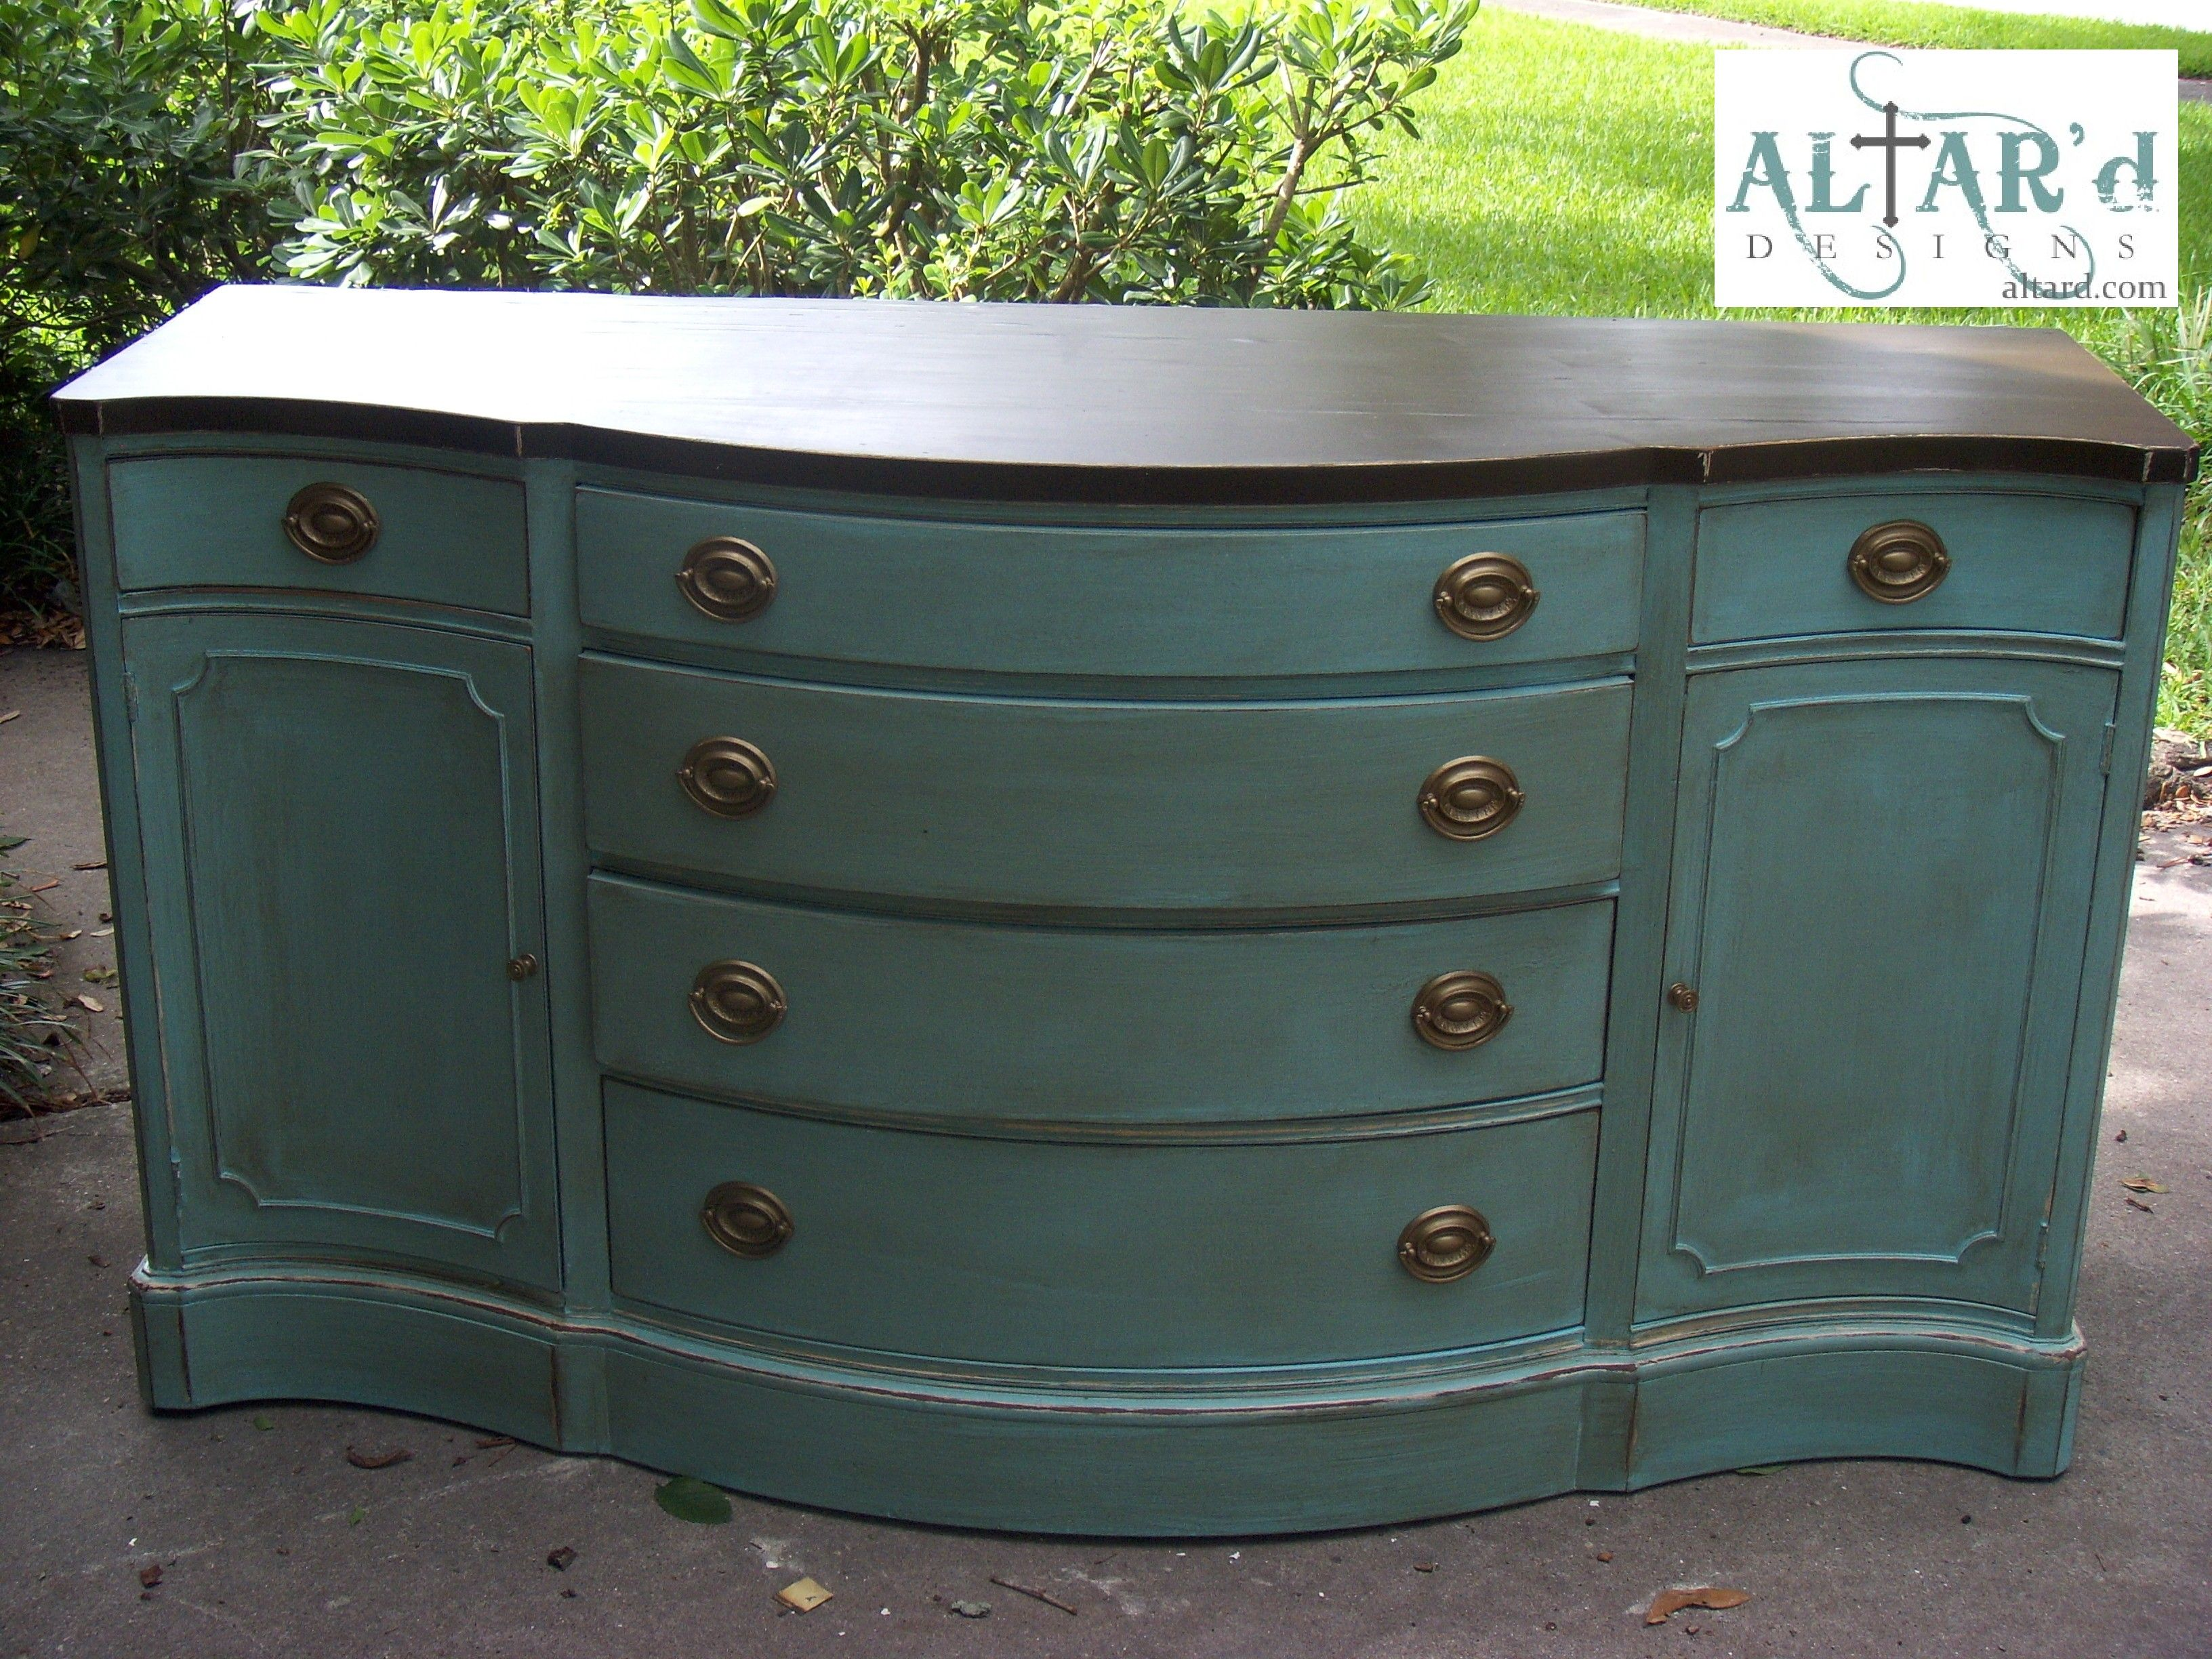 A Duncan Phyfe Style Buffet In Pale Aqua Distressed Glazed With An Espresso Top